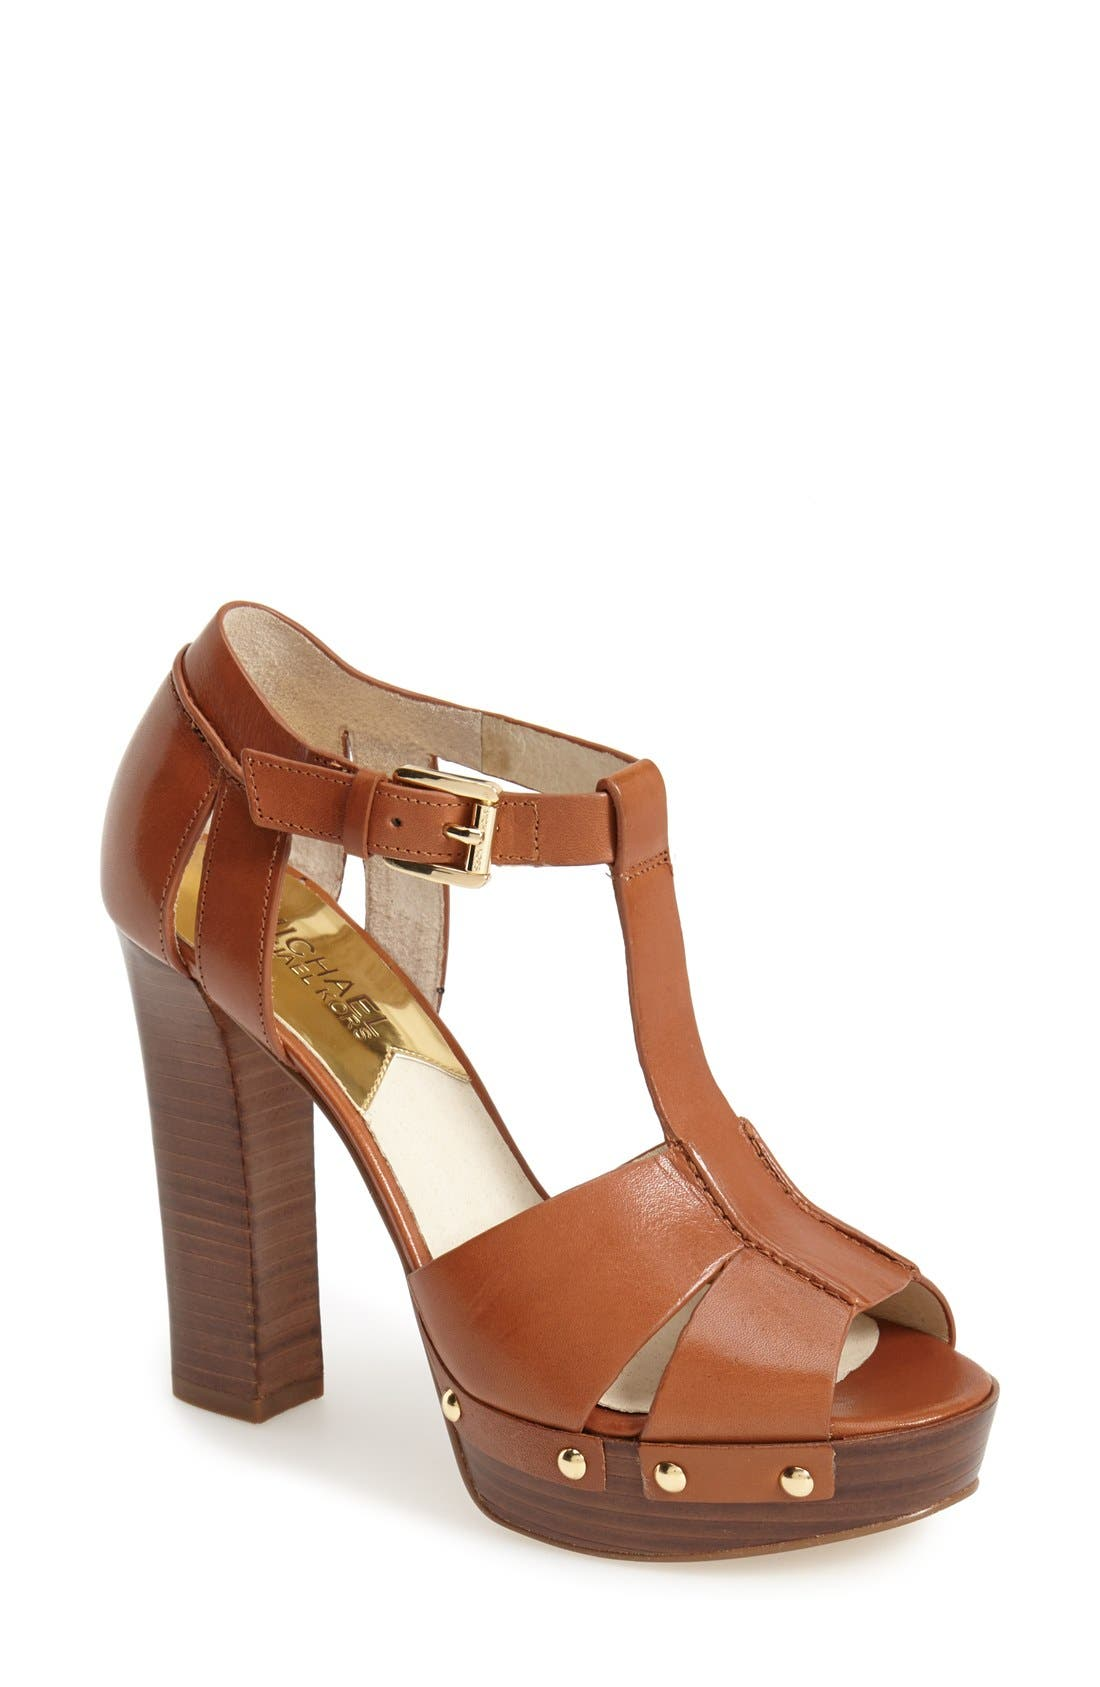 Main Image - MICHAEL Michael Kors 'Beatrice' Leather T-Strap Platform Sandal (Women)